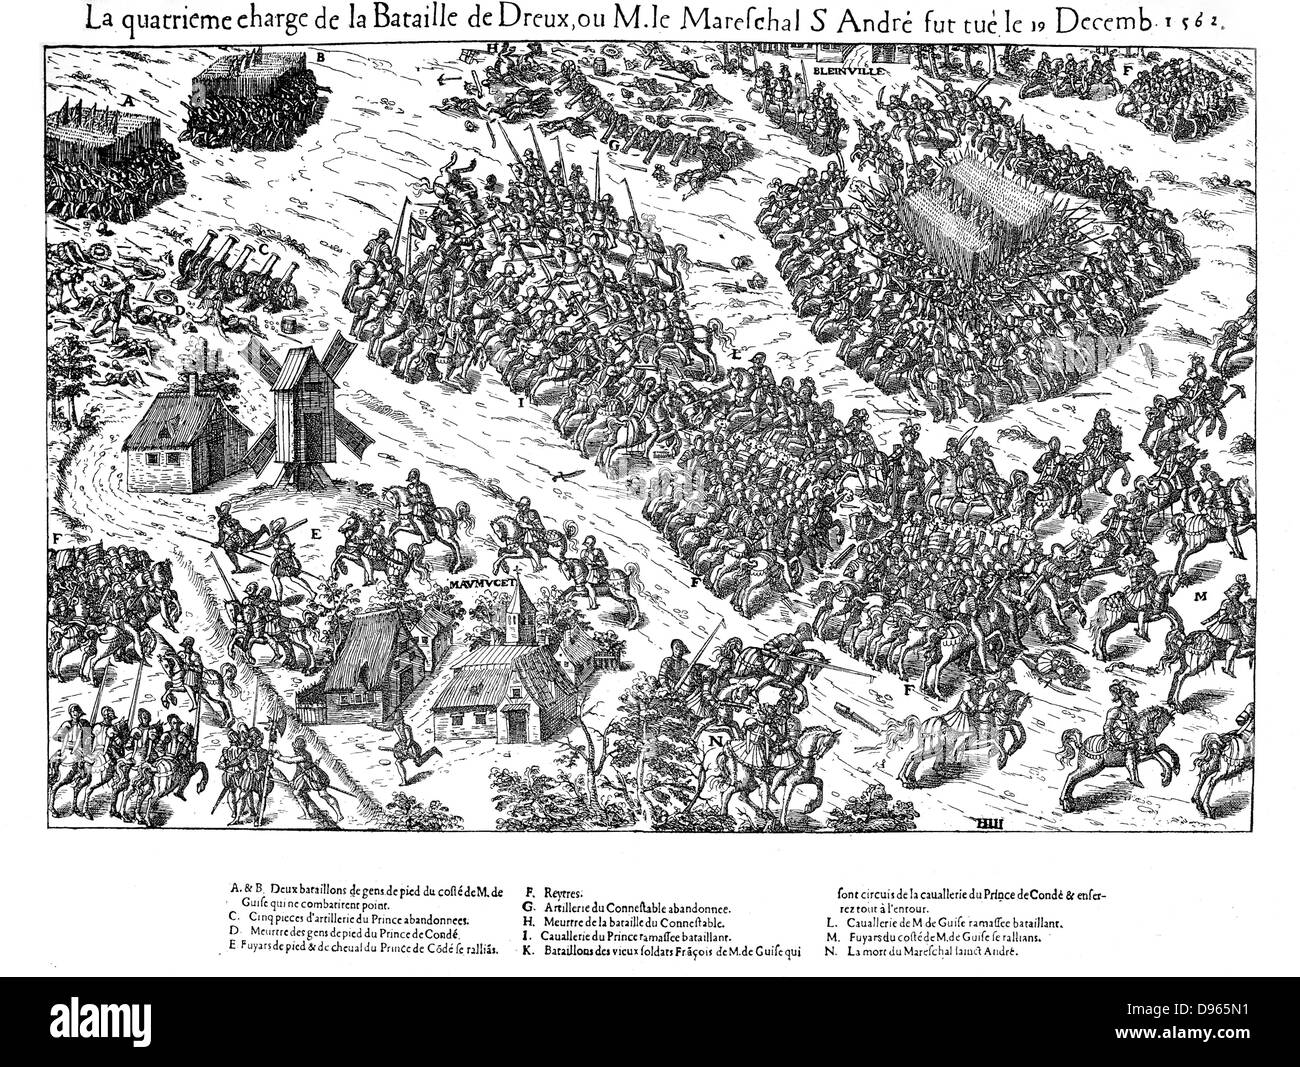 French Religious Wars 1562-1598. Fourth charge at the battle of Dreux, 19 December 1562.  Constable of France, Anne - Stock Image